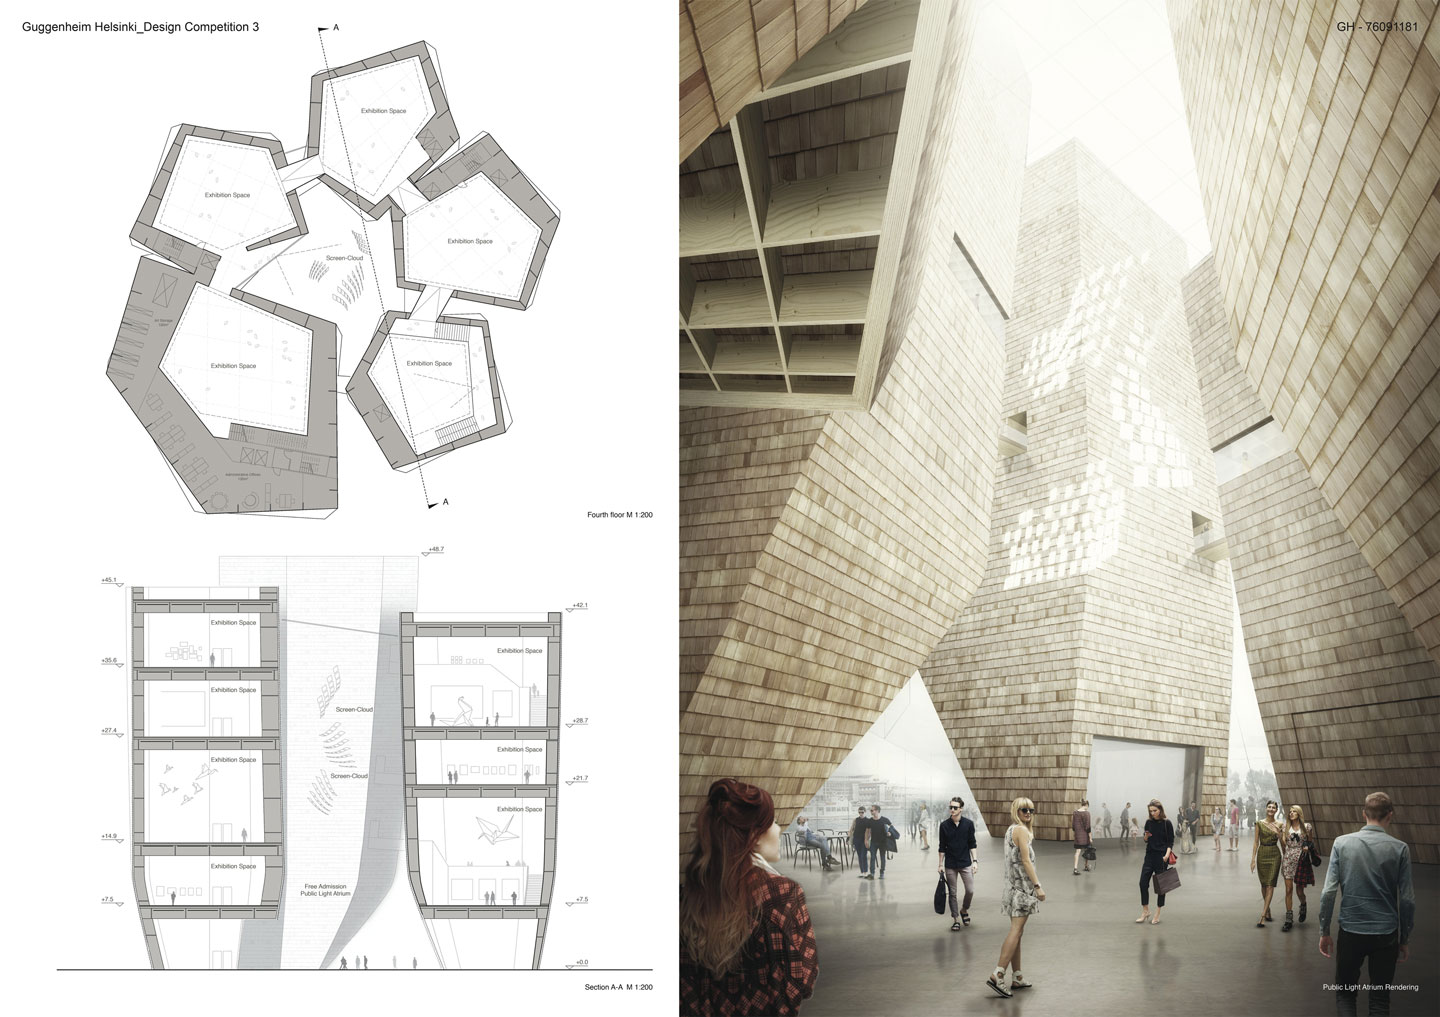 Guggenheim helsinki inspires the new shape of for Architecture house design competitions